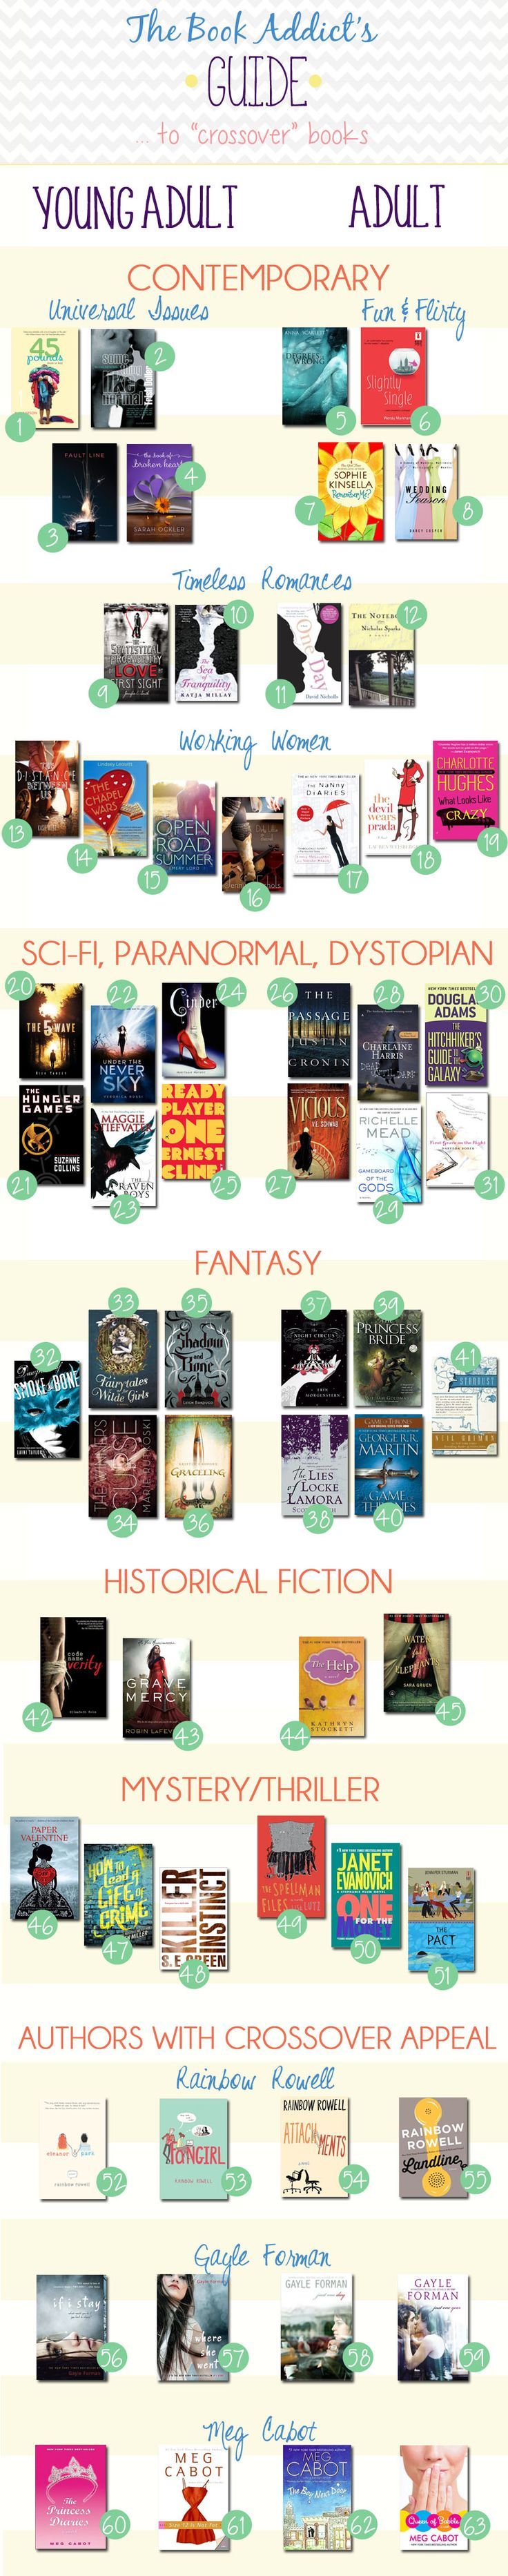 Bridge the gap between Adult and YA! // The Book Addict's GUIDE to reading crossover books! // Infographic